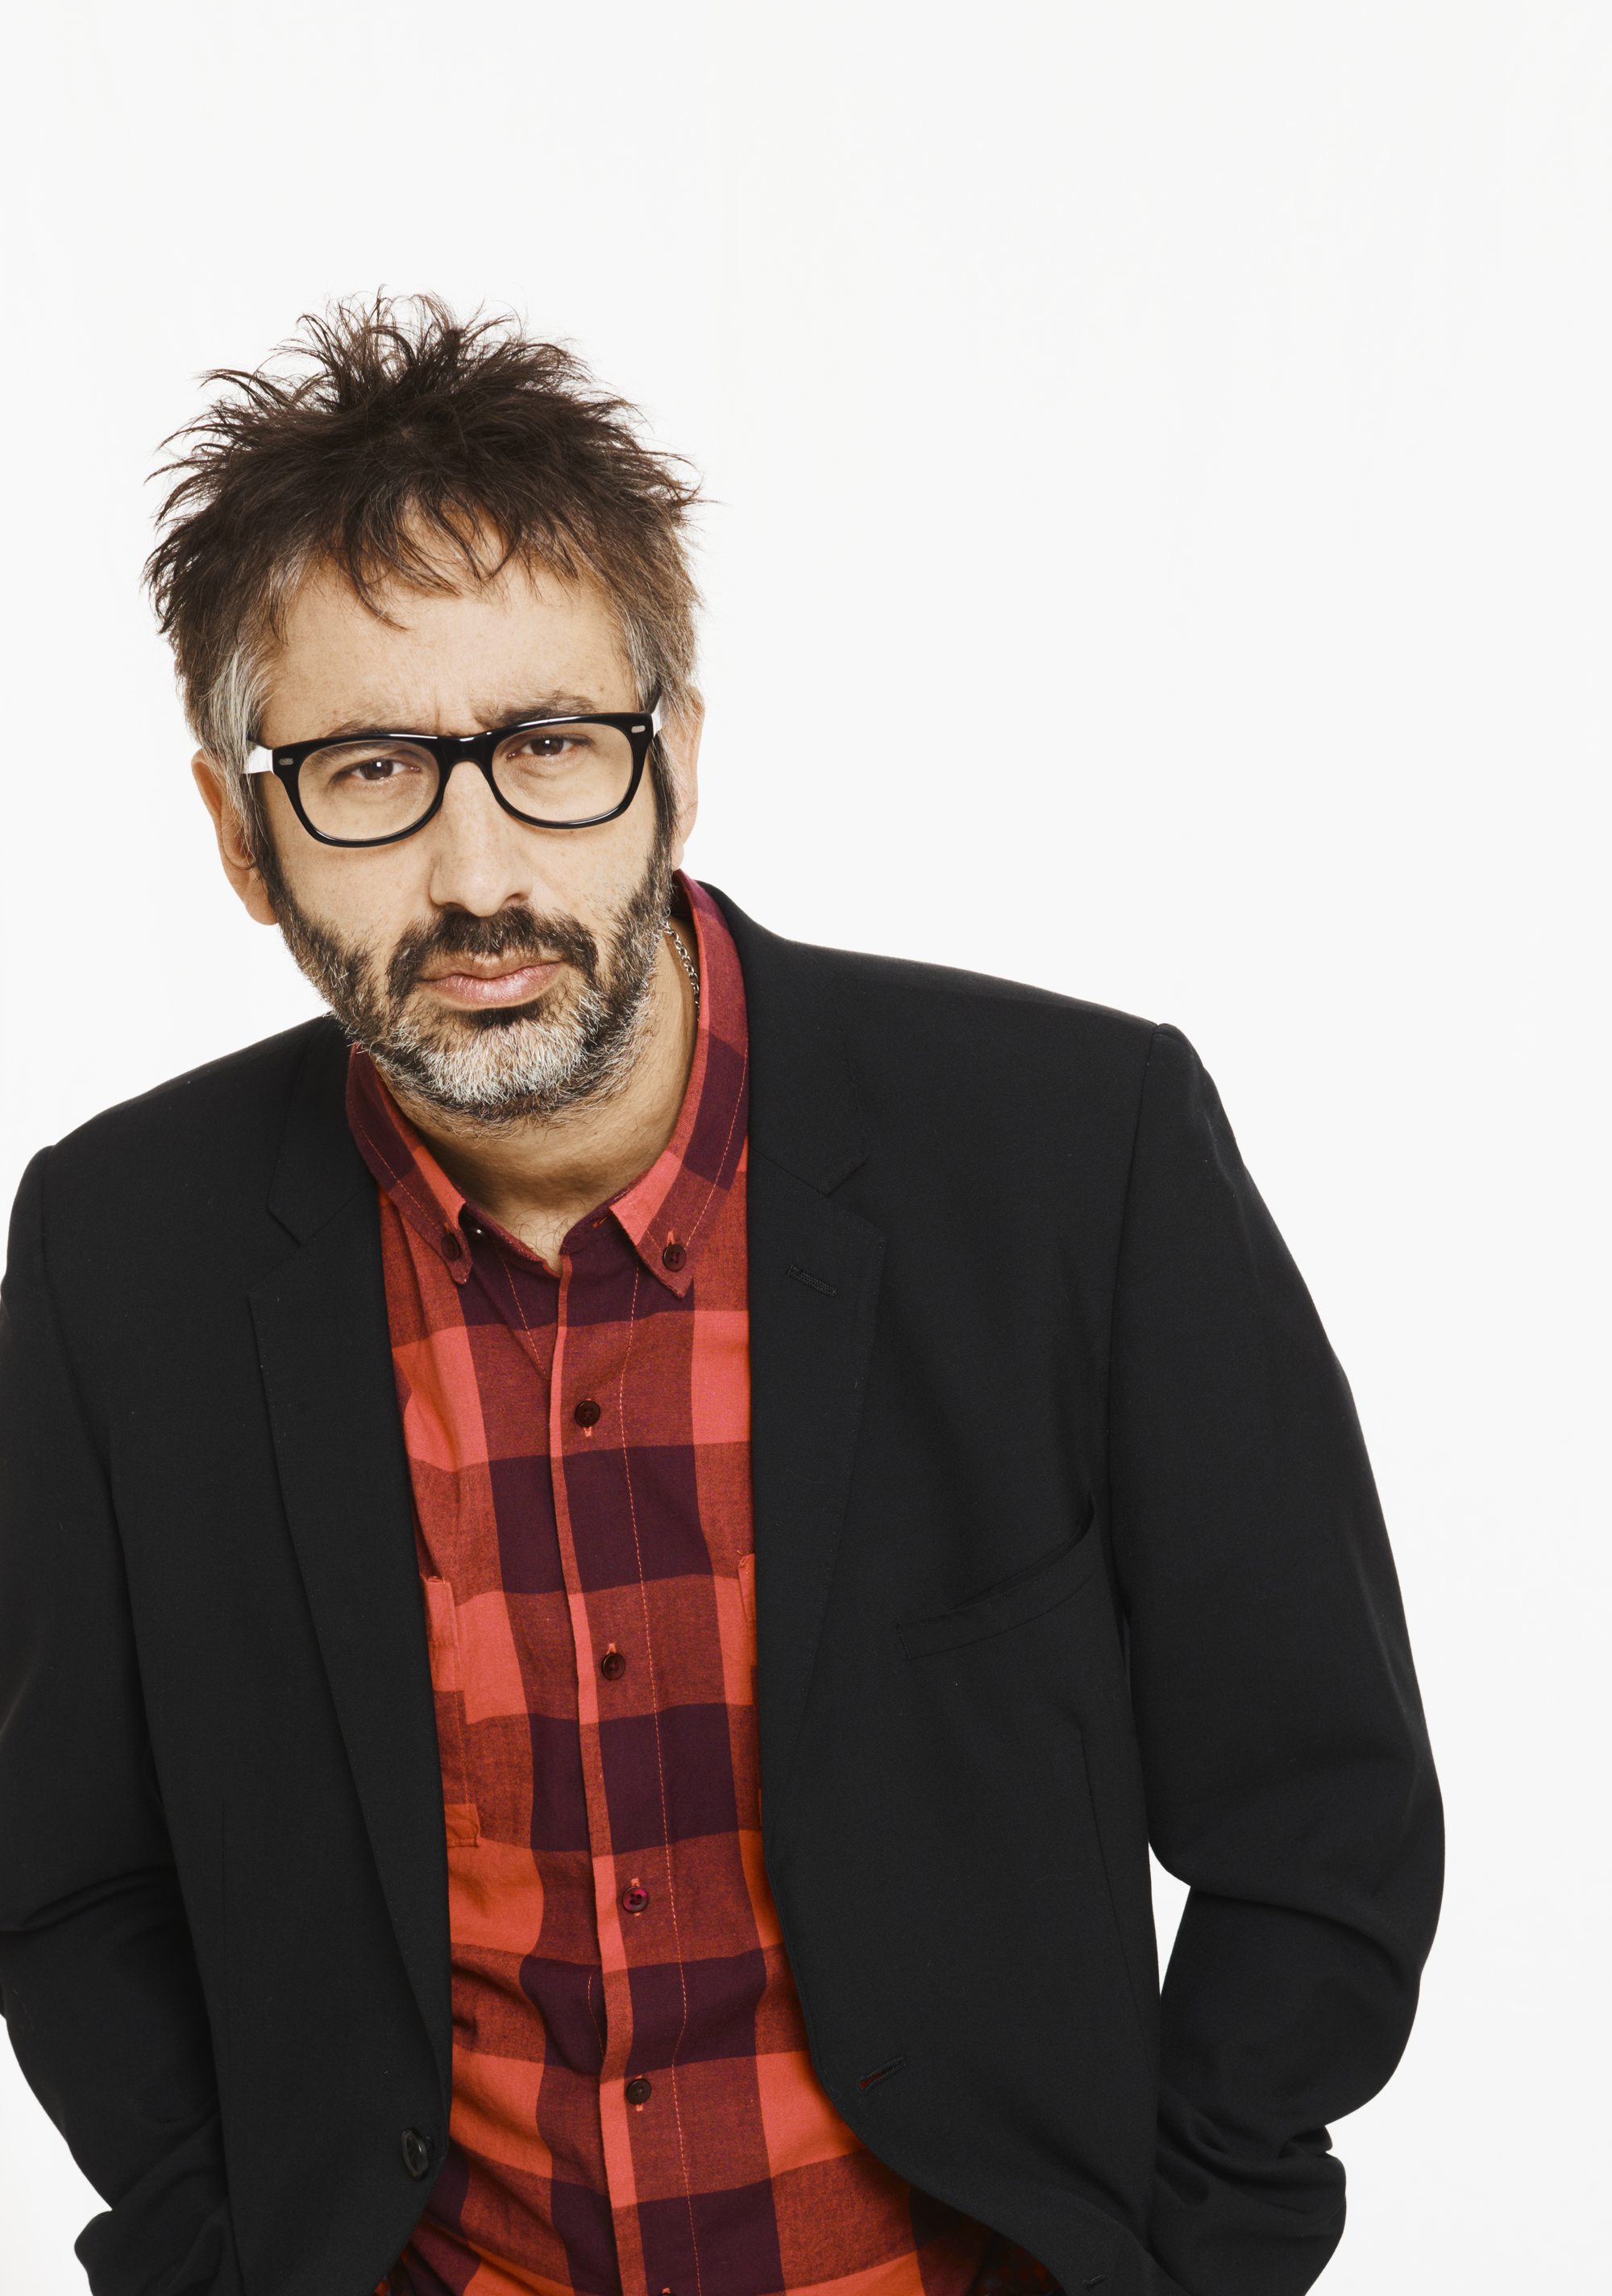 David Baddiel talked about fame at the Courtyard theatre in Hereford.